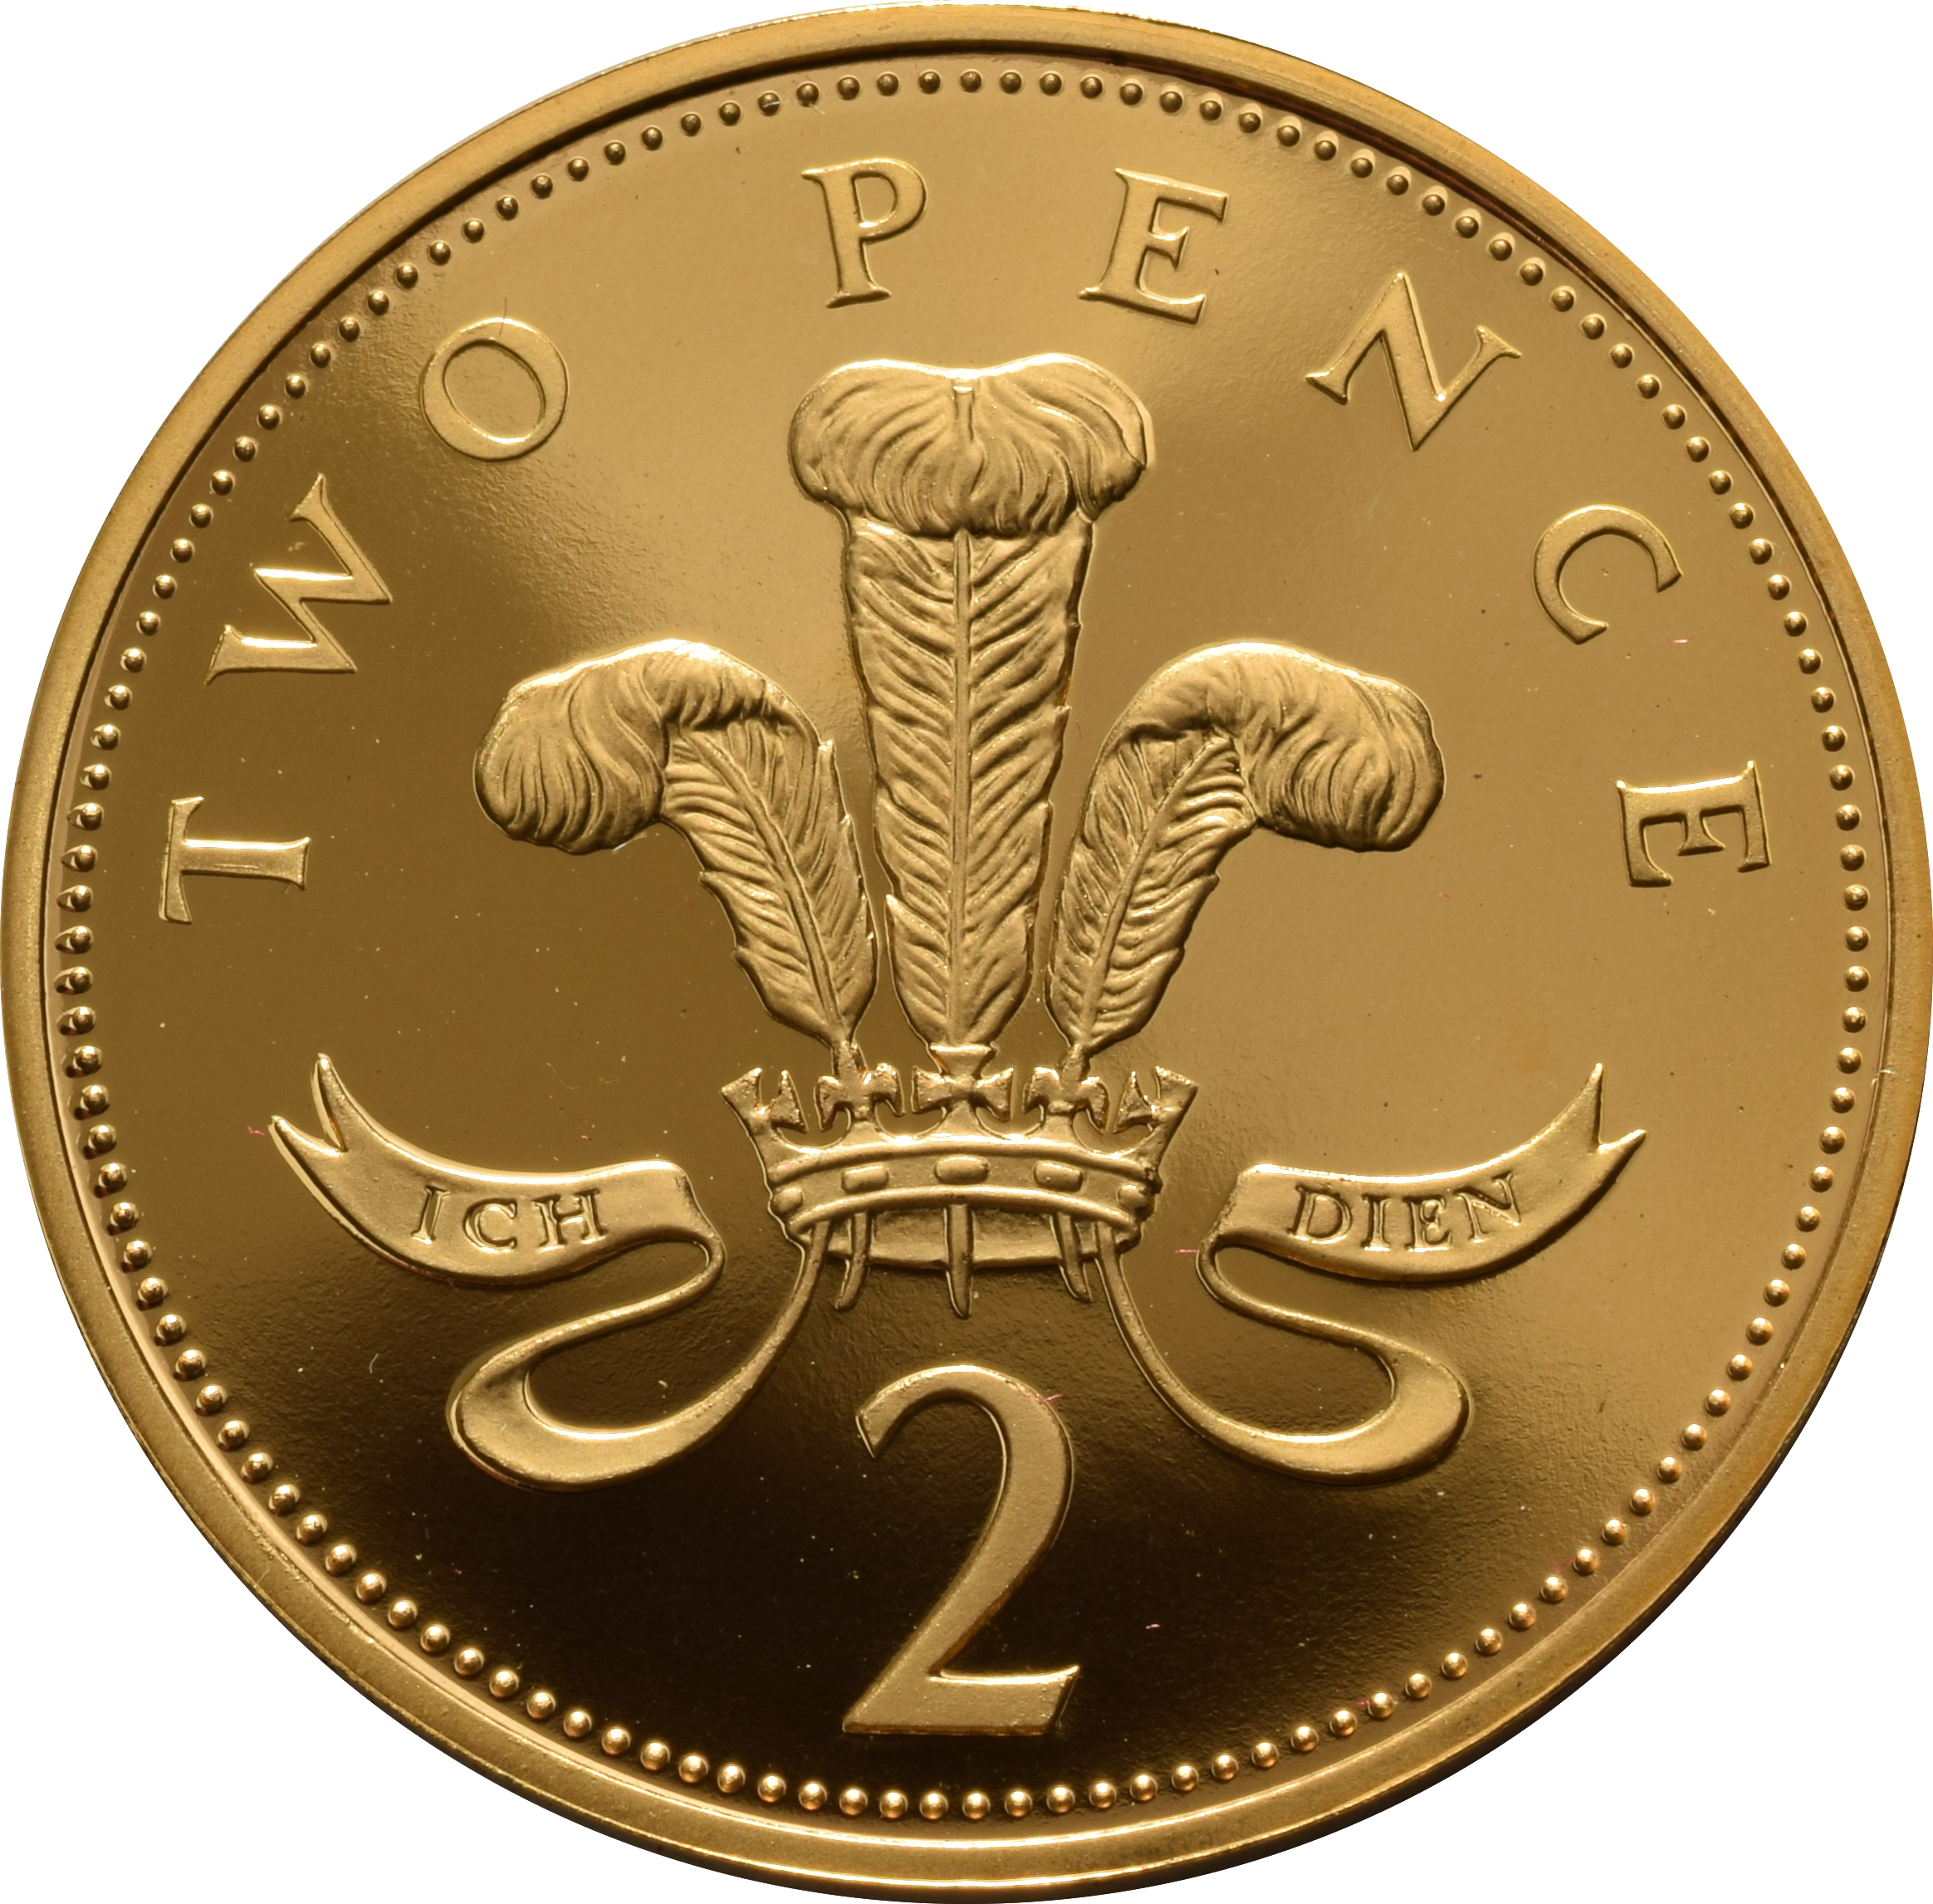 Gold Two Pence Piece Buy 2p Gold Coins At Bullionbypost